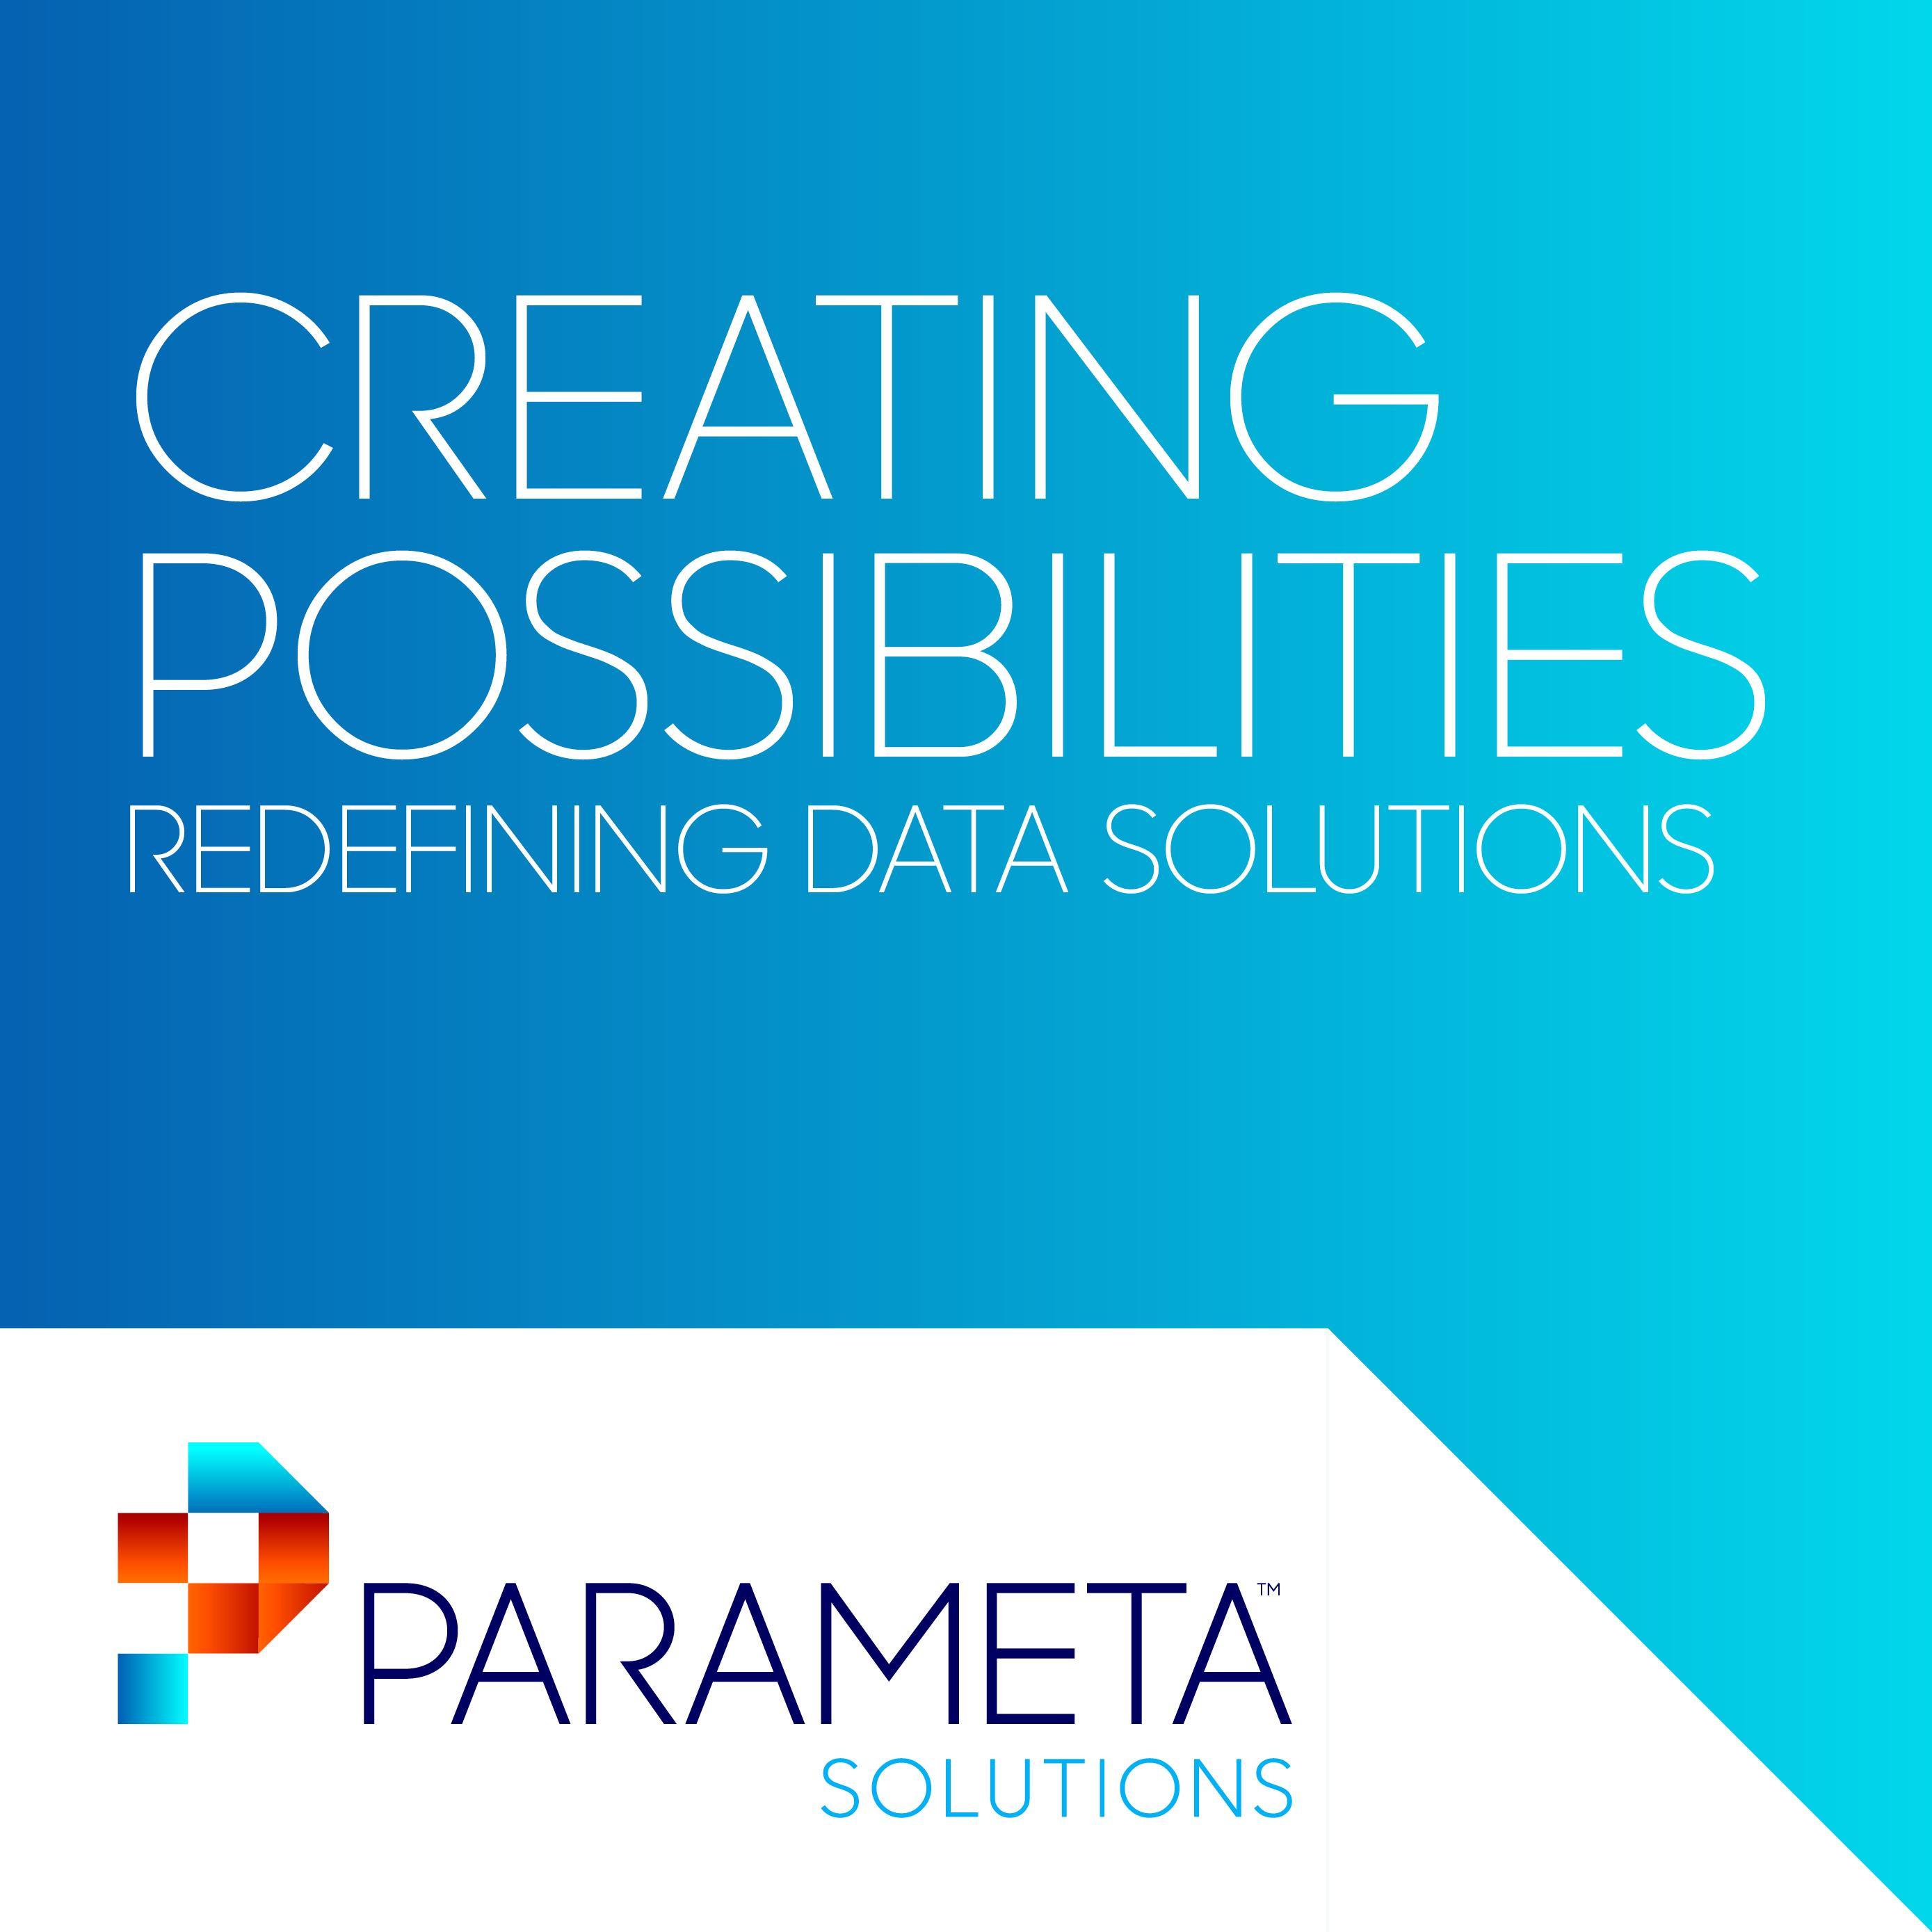 TP ICAP launches Parameta Solutions